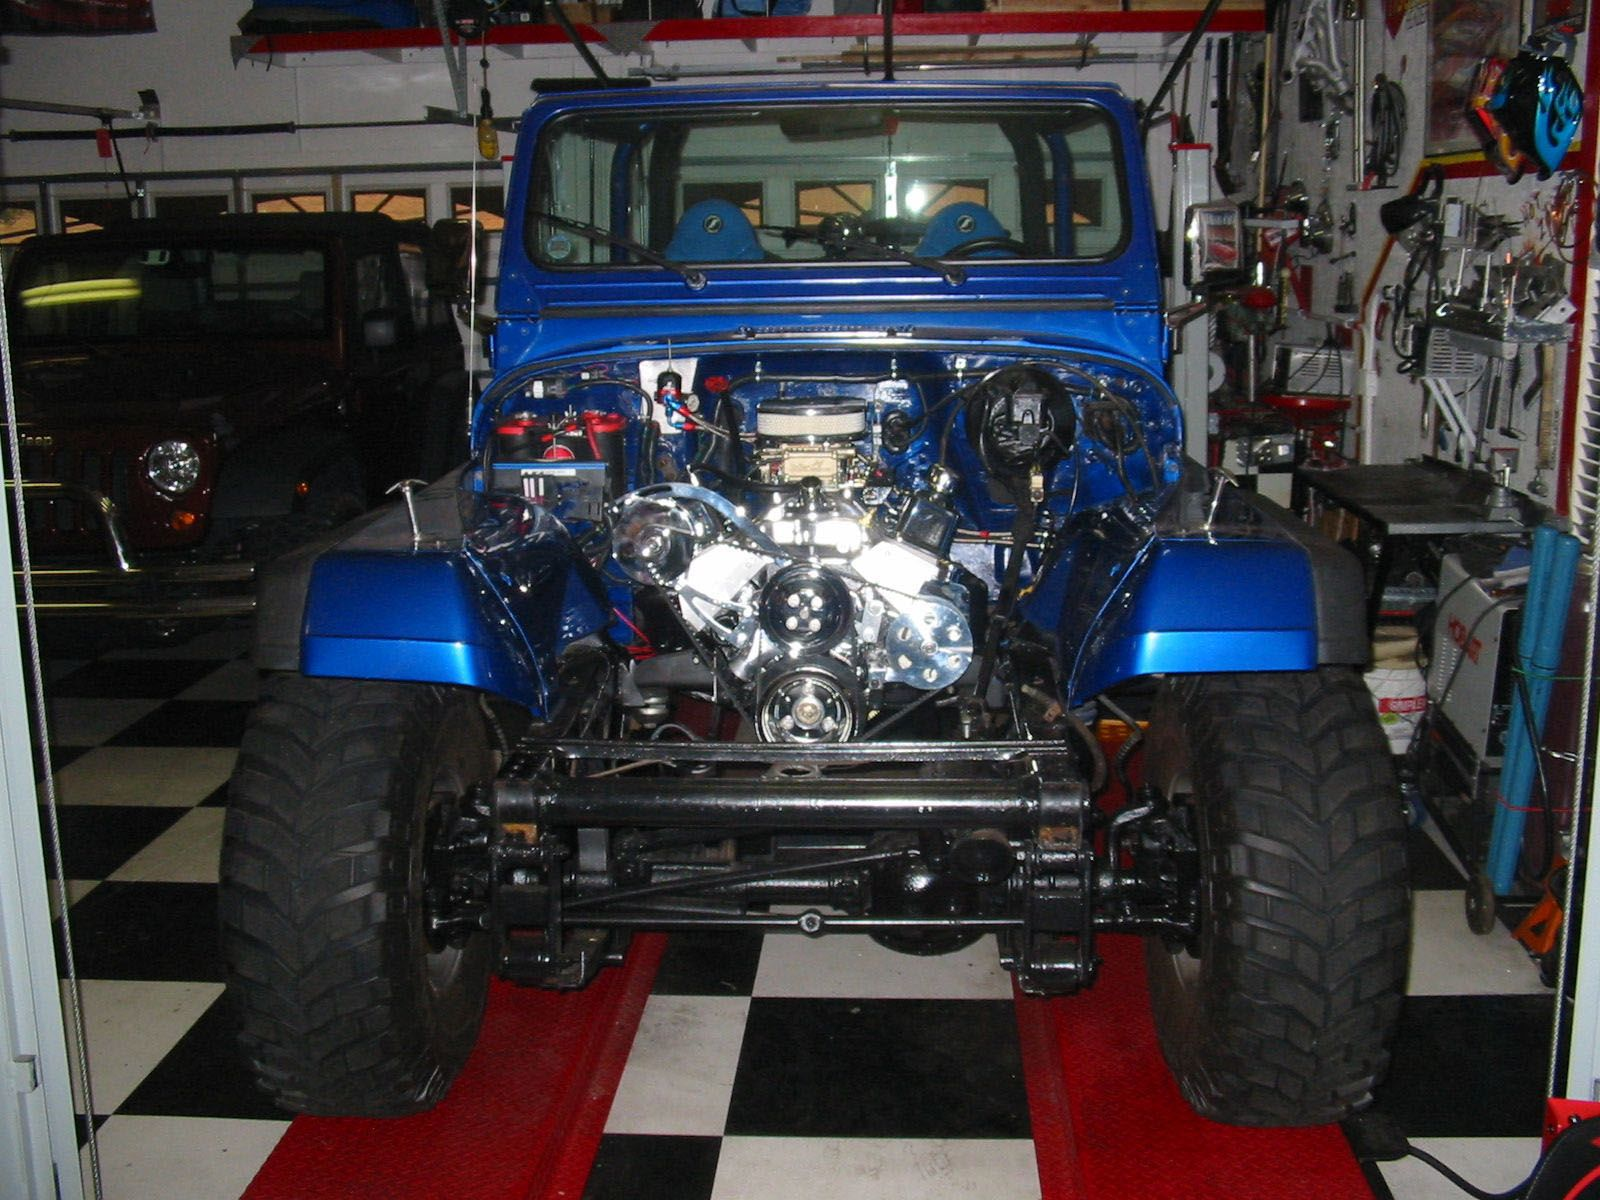 Customer submission of our bp3834ct1 into his 1994 jeep wrangler customer submission of our bp3834ct1 into his 1994 jeep wrangler blueprintengines crateengine jeep malvernweather Choice Image